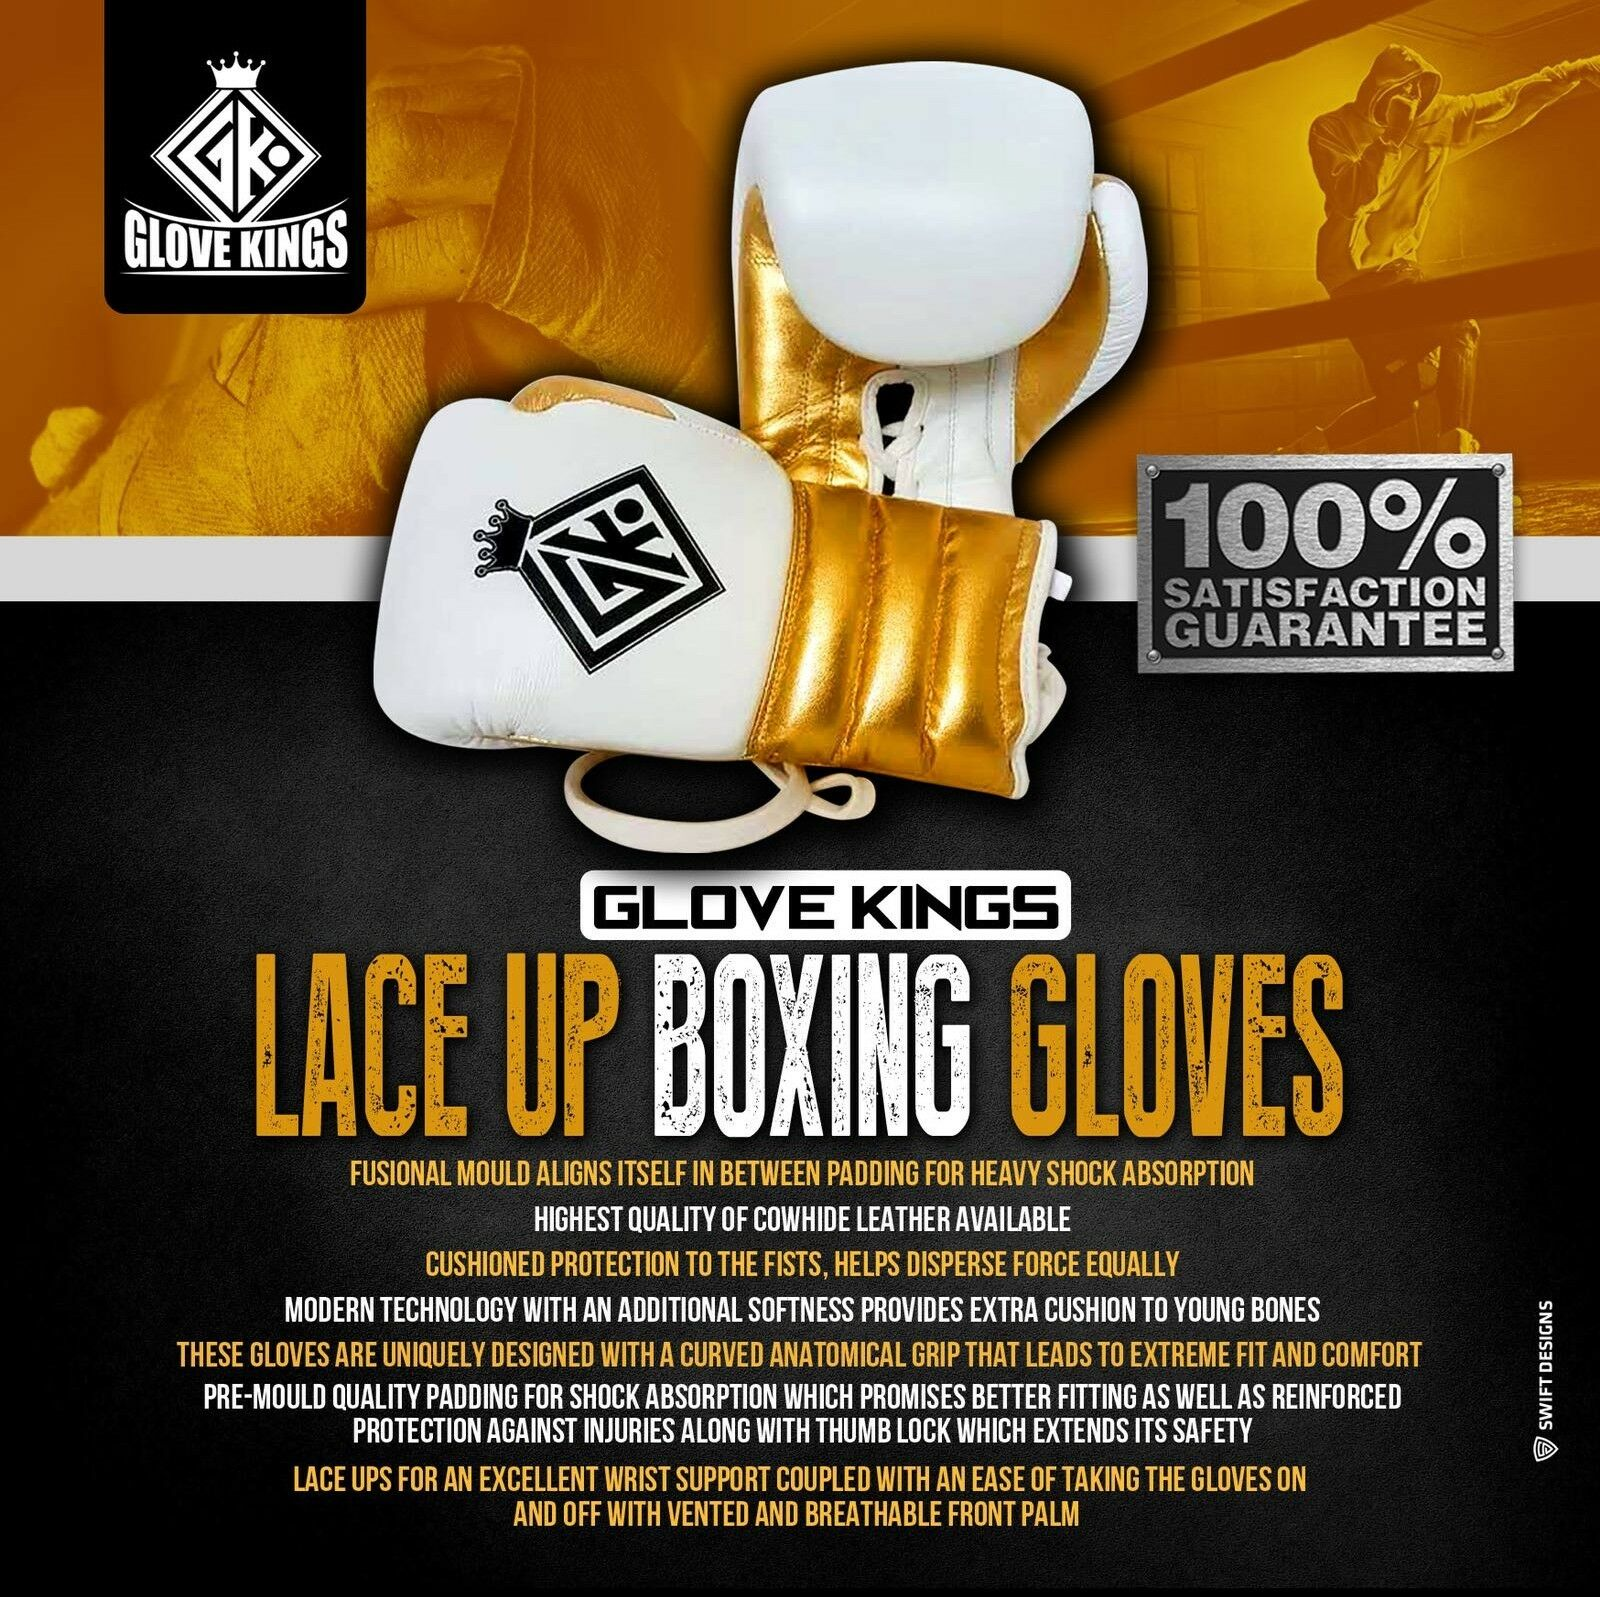 LACE BAG UP BOXING GLOVES BAG LACE PAD PUNCH GK UFC INSPIROT BY GRANT WINNING CLETO REYES 1ab518